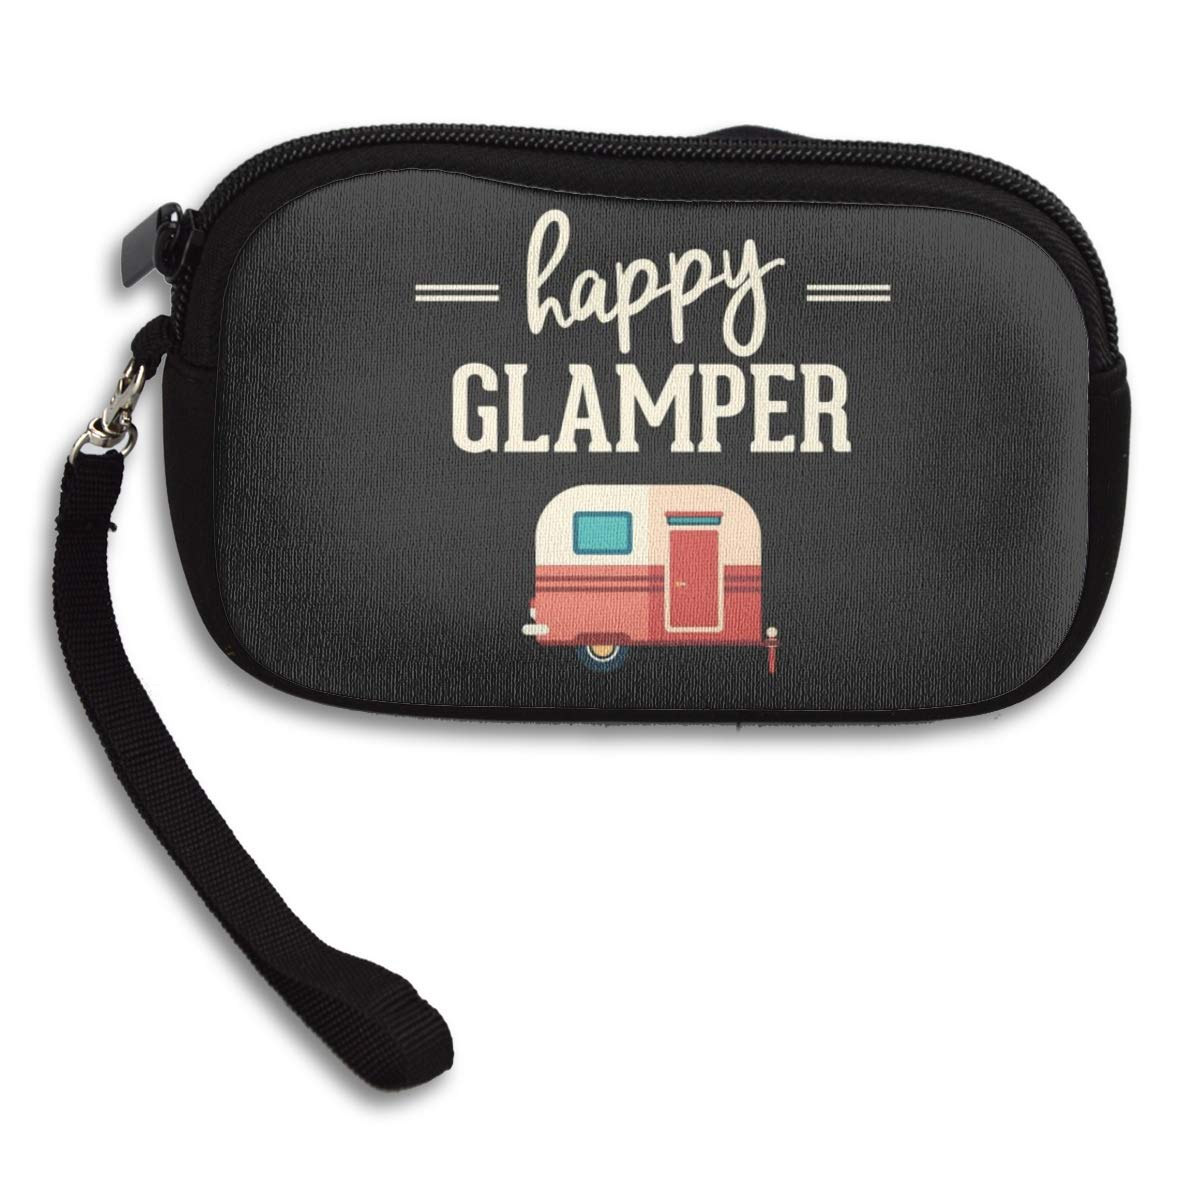 Coin Purse Happy Glamper Coin Pouch With Zipper,Make Up Bag,Wallet Bag Change Pouch Key Holder